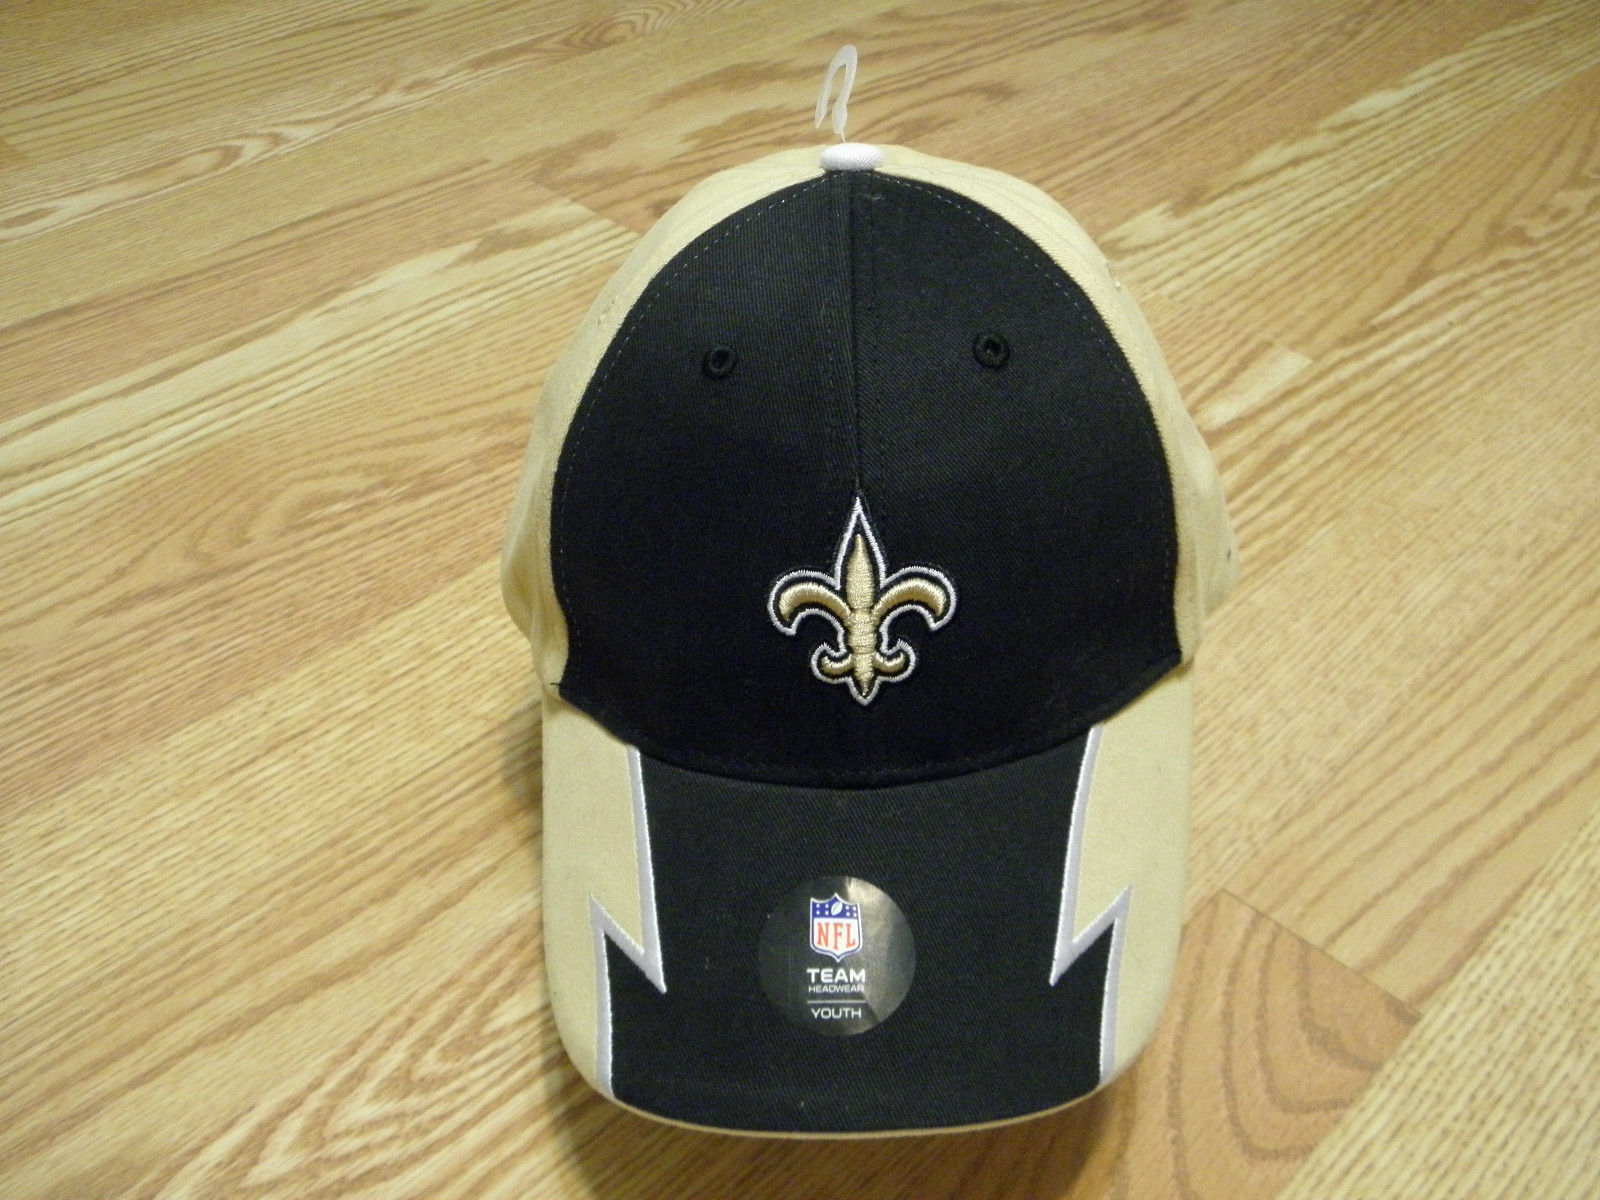 NEW ORLEANS SAINTS NFL APPAREL YOUTH BLACK & GOLD CAP W/ADJUSTABLE STRAP, NWT